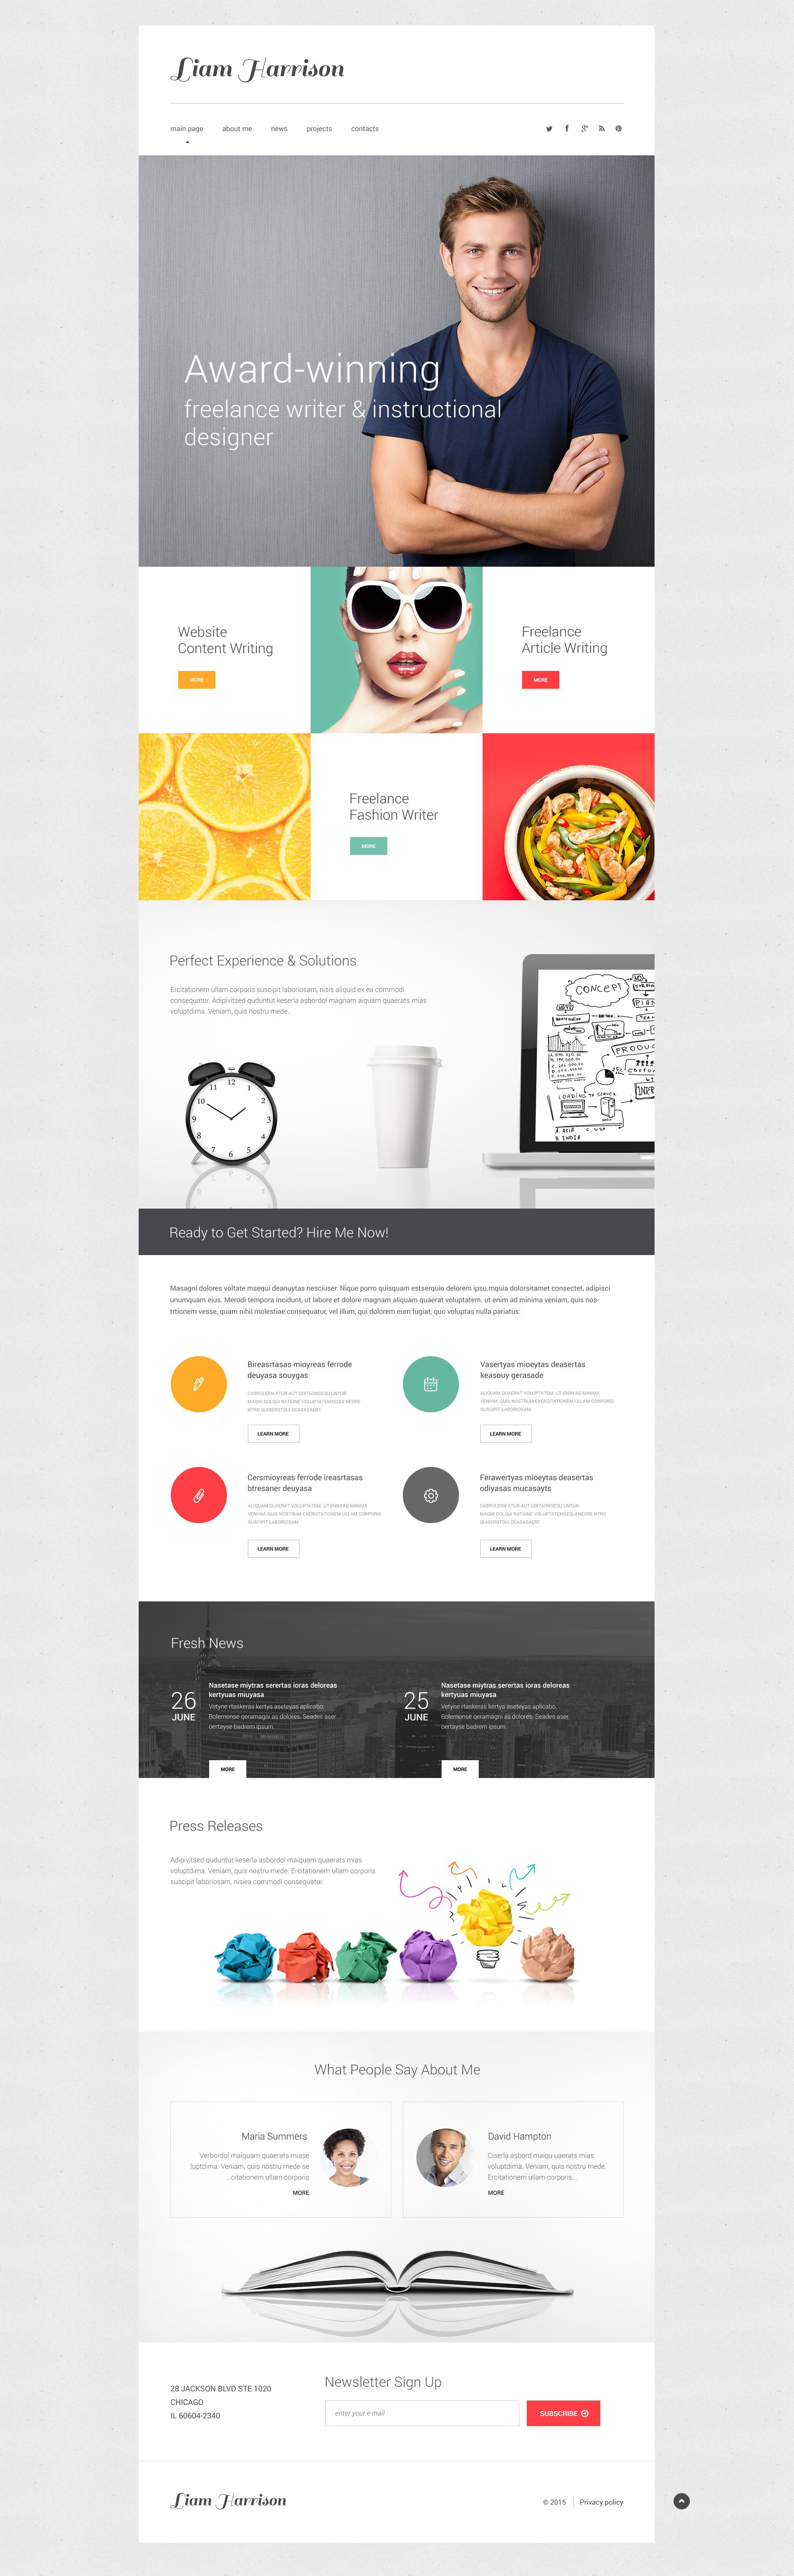 Writer/Author Responsive Website Template #54686